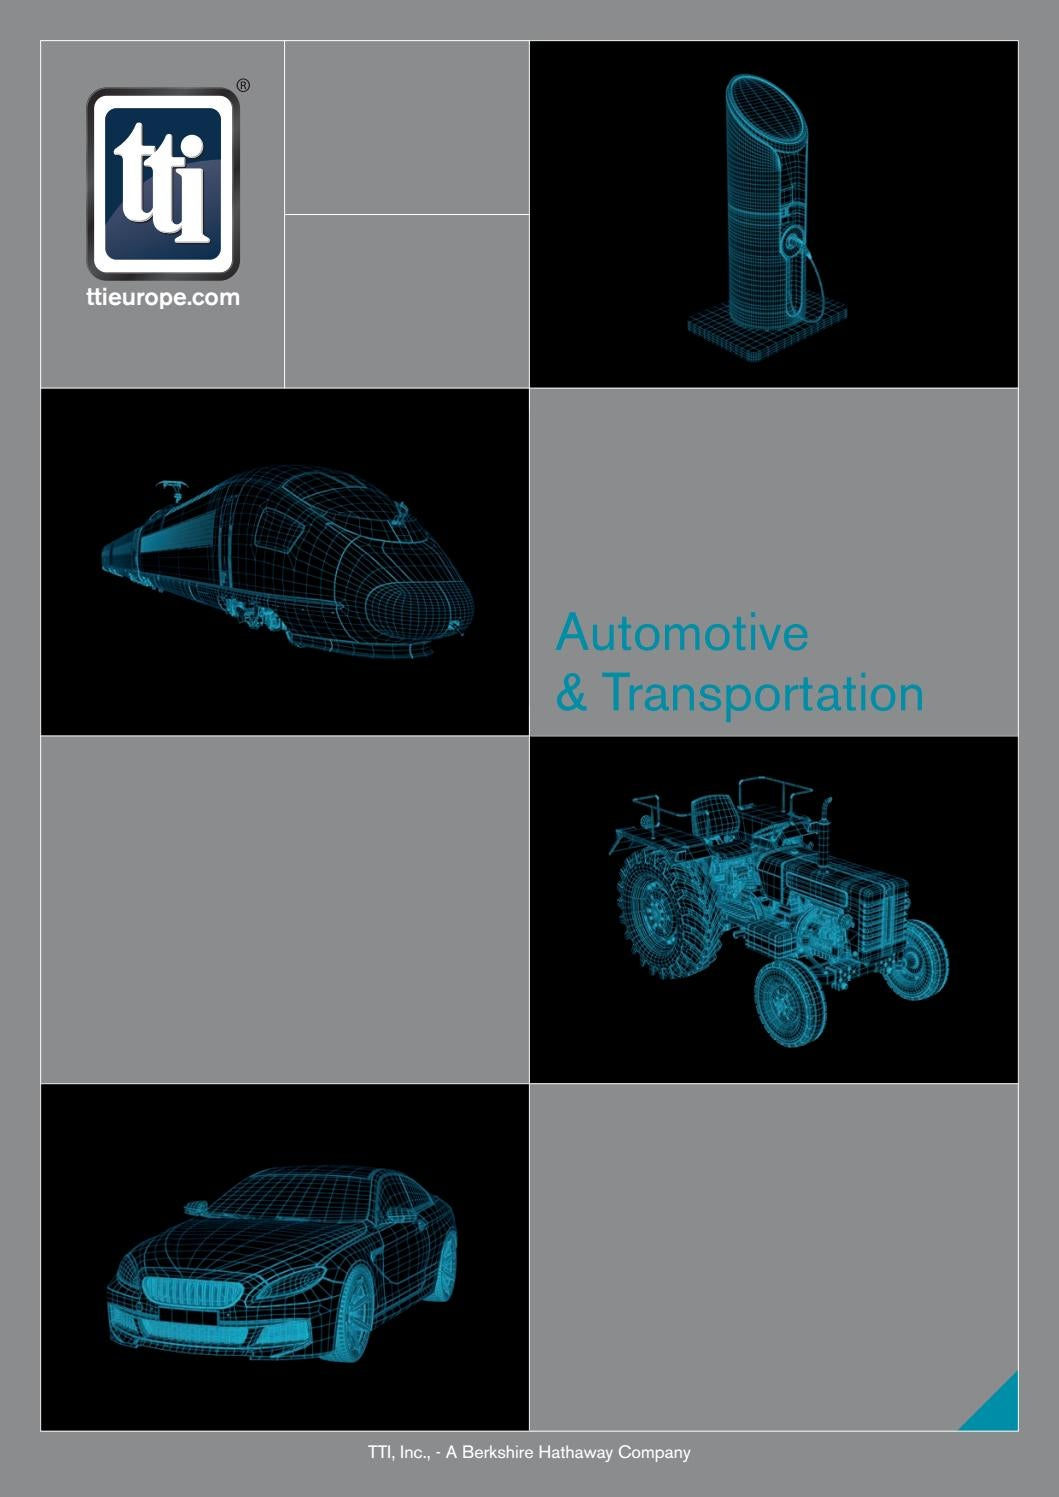 Tti Automotive Tranportation Brochure By Inc Issuu Pin Image Pinout For Connector Diagrams Monitor Atx Dvi Transistor On